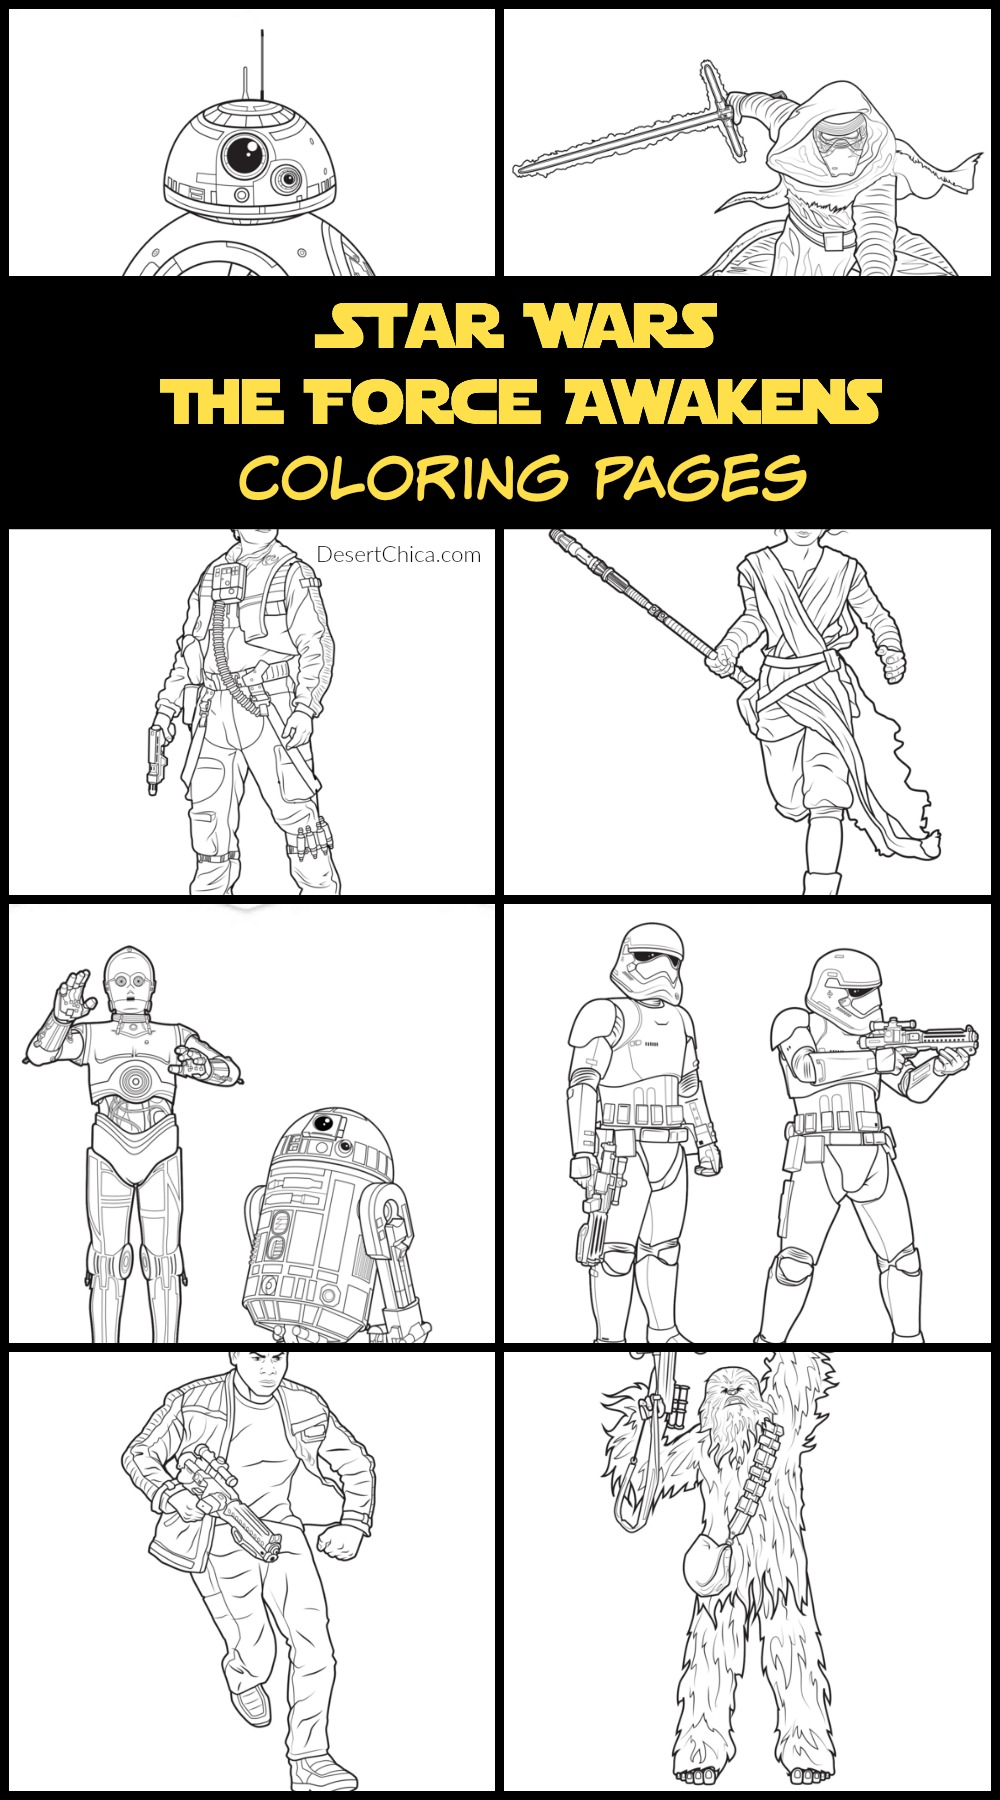 Star Wars The Force Awakens Coloring Pages and Activities | Desert Chica